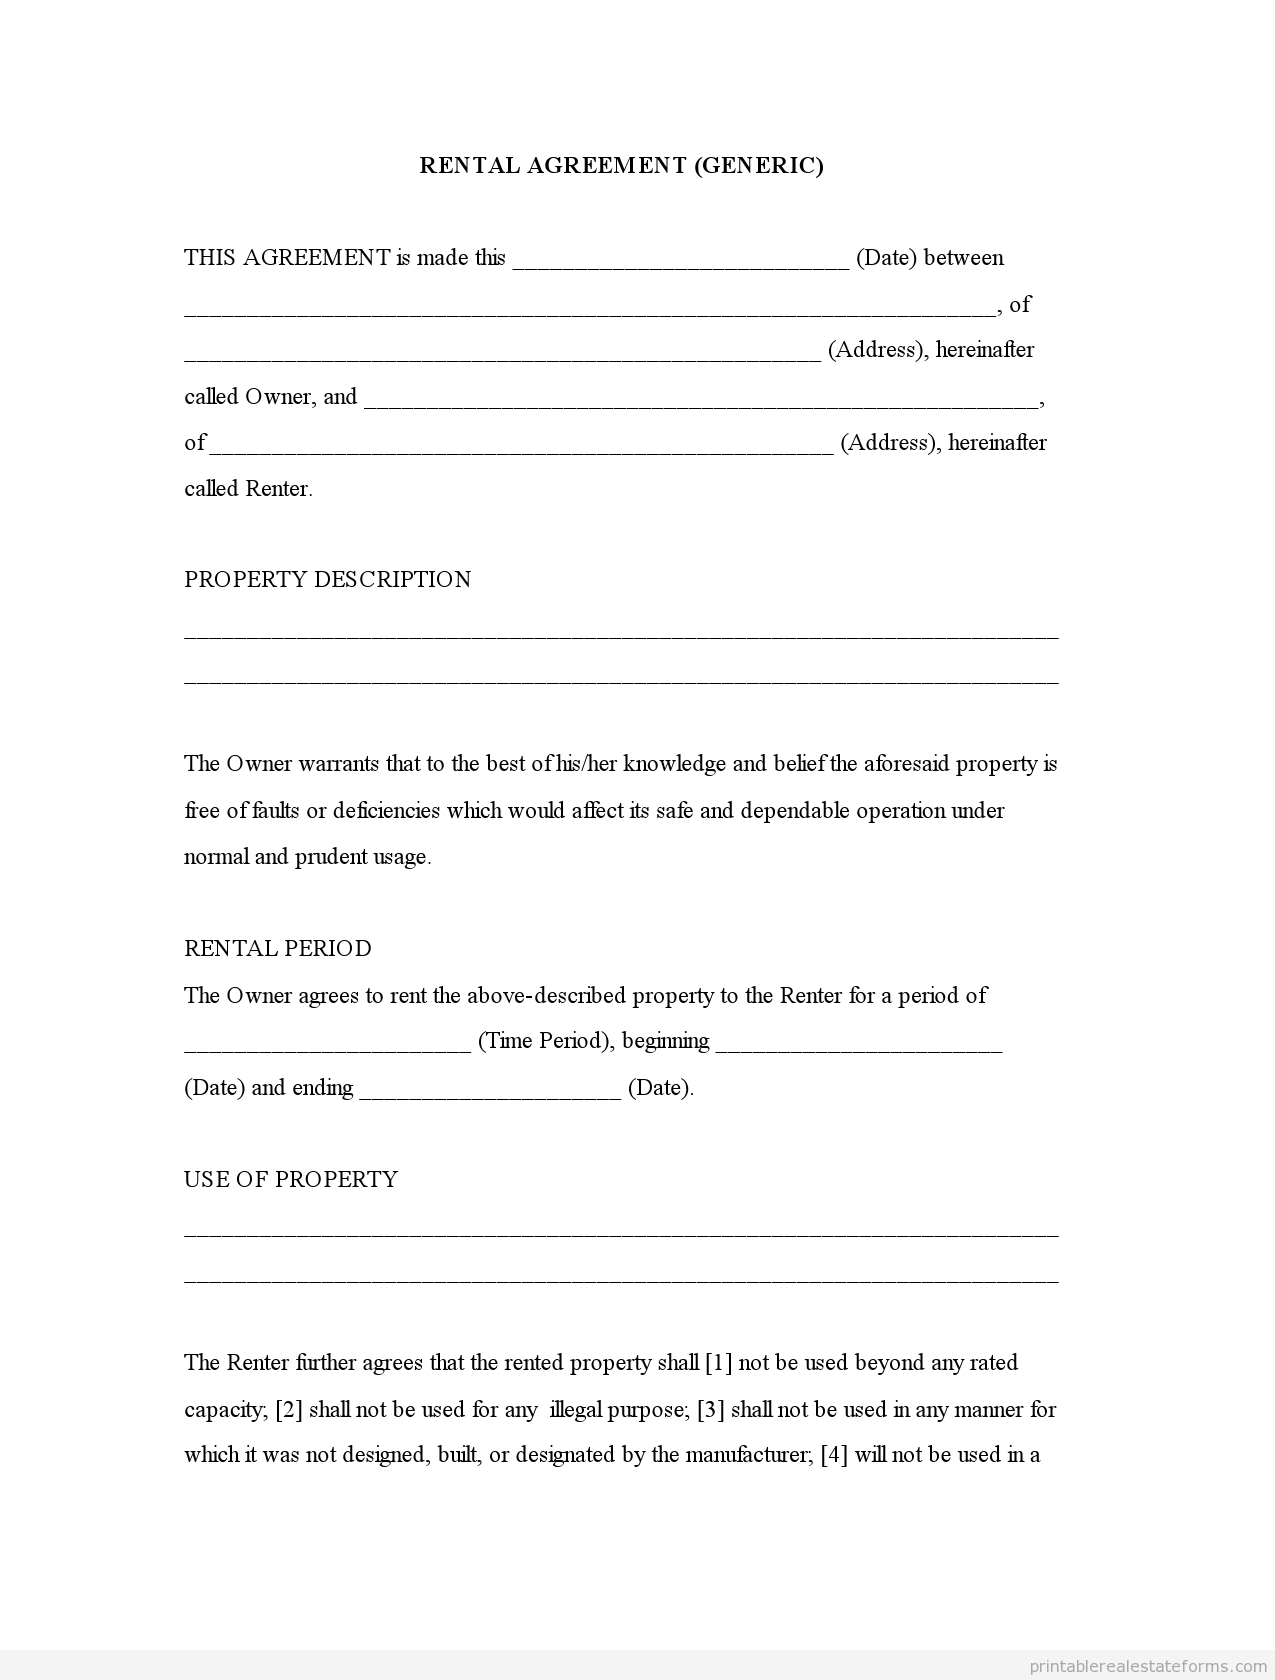 (GENERIC TEMPLATE) Rental Agreement Forms Free Printable  Free Printable Residential Lease Agreement